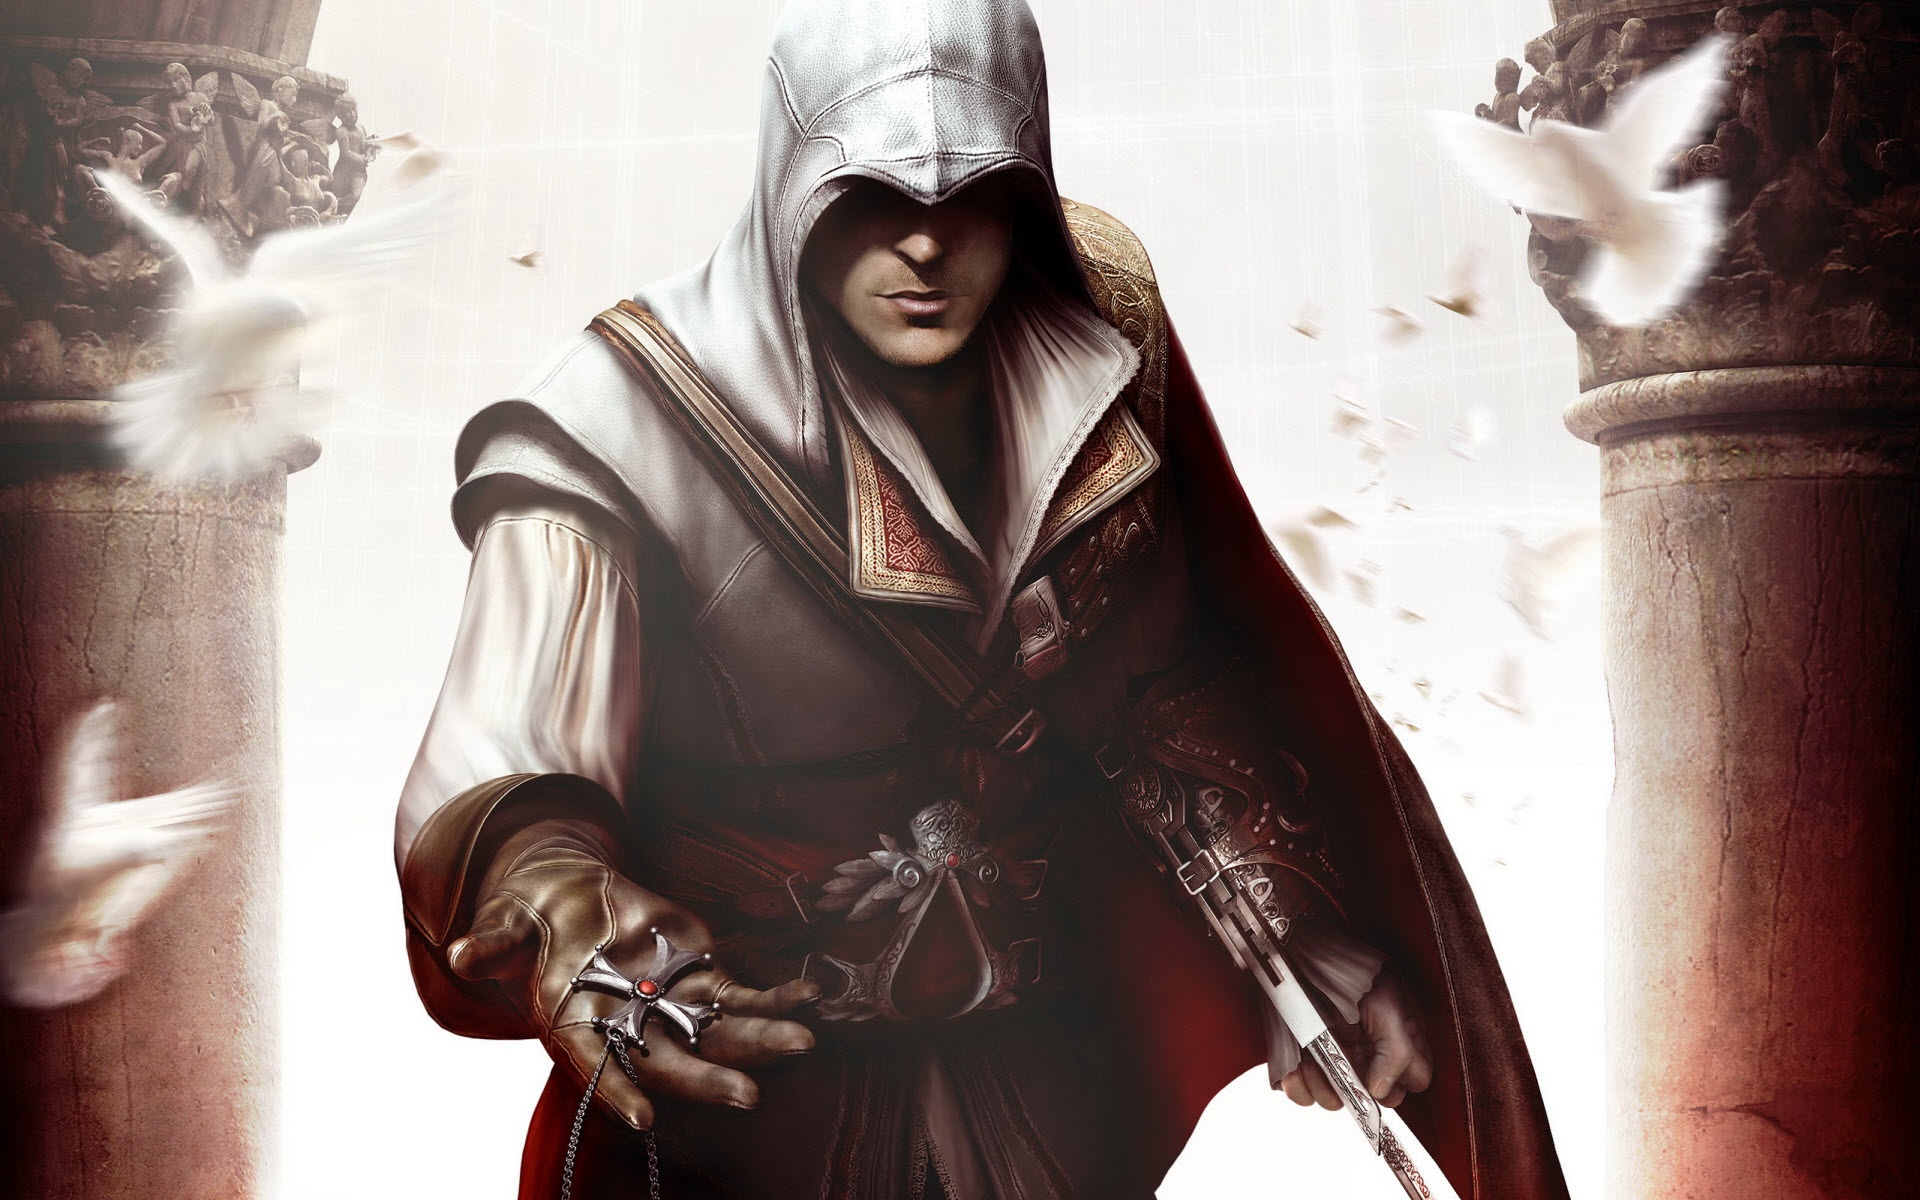 assassin's creed ii hq wallpapers in jpg format for free download